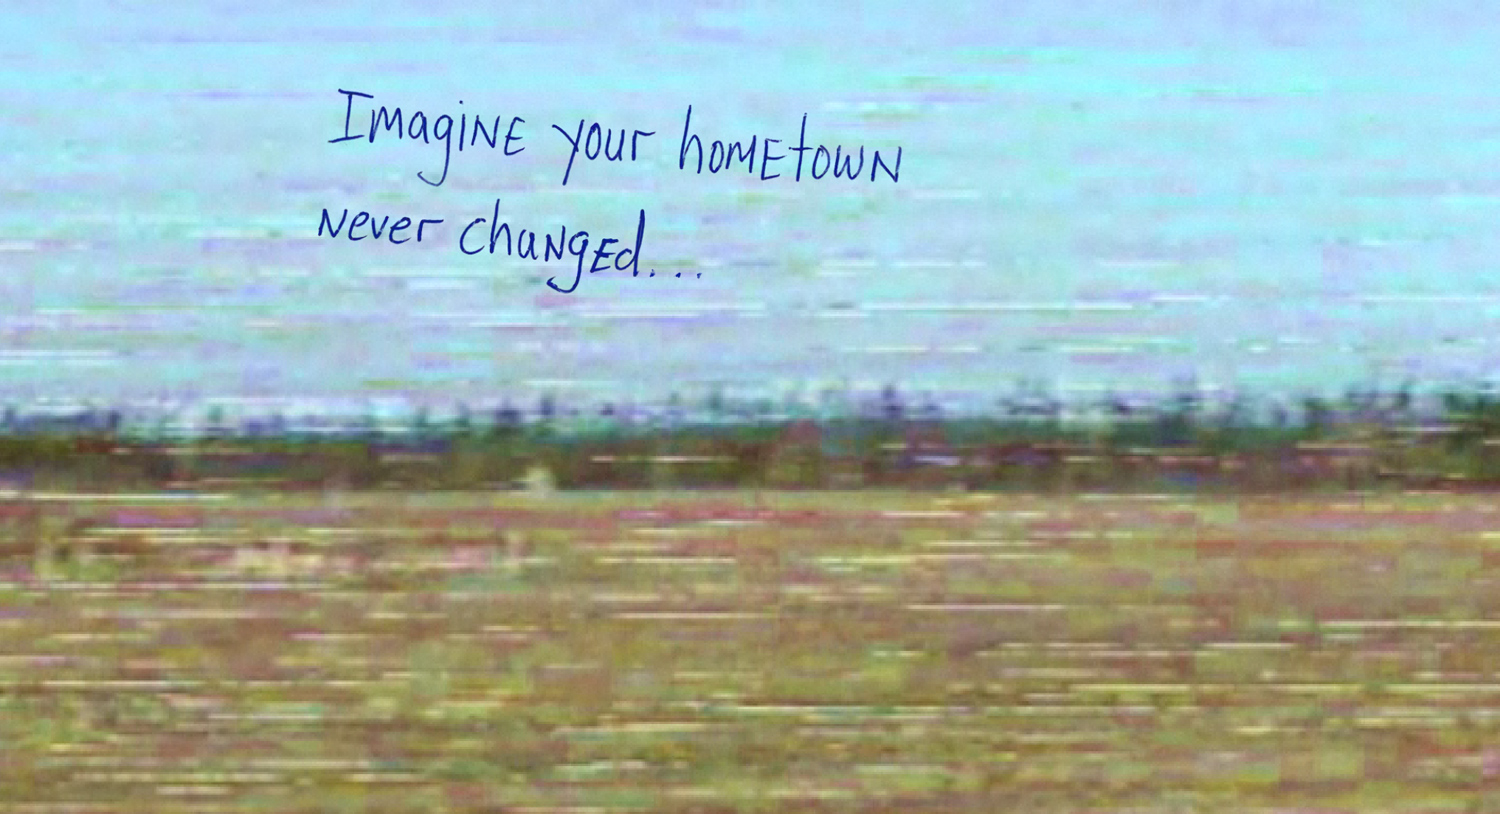 A screen capture showing the opening page of  Welcome to Pine Point by the Goggles, a project awarded two Webby Awards in 2011.